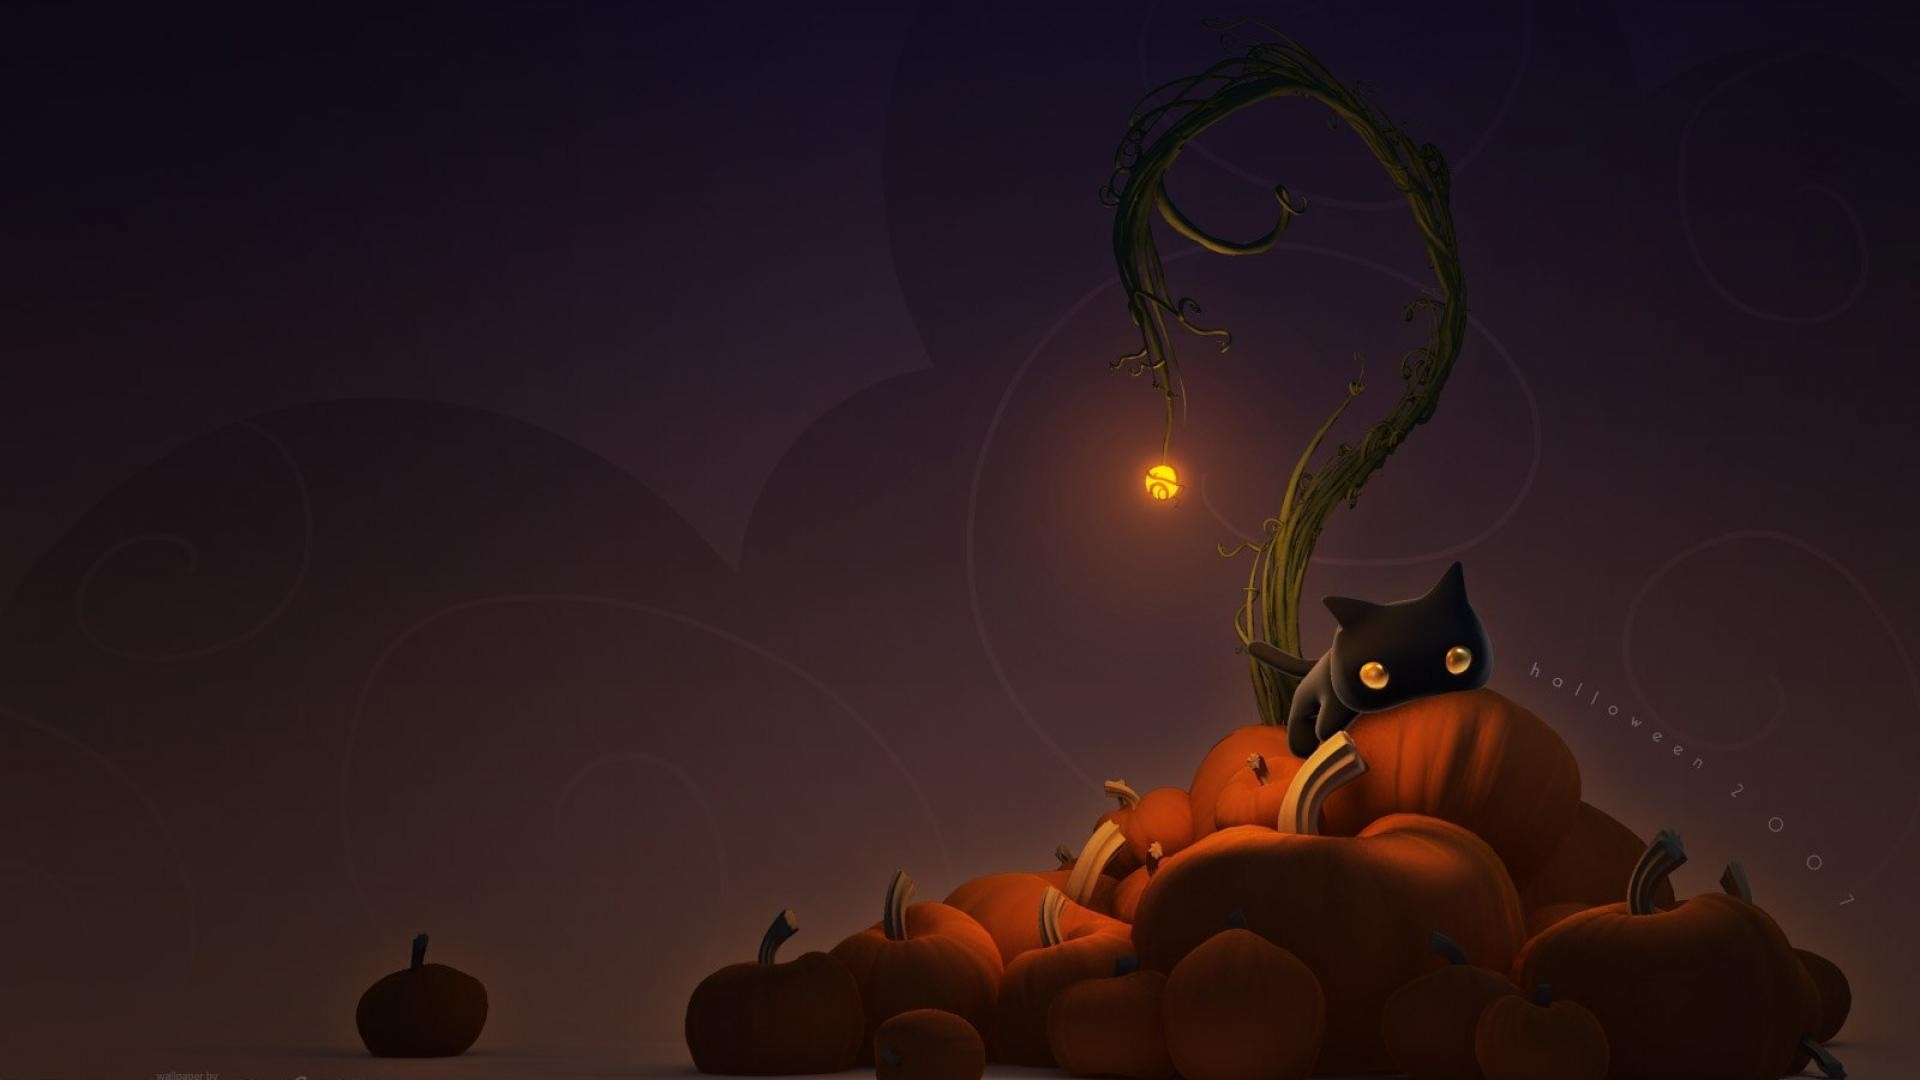 1920x1080 most popular cute halloween backgrounds  ·  most popular  cute halloween backgrounds